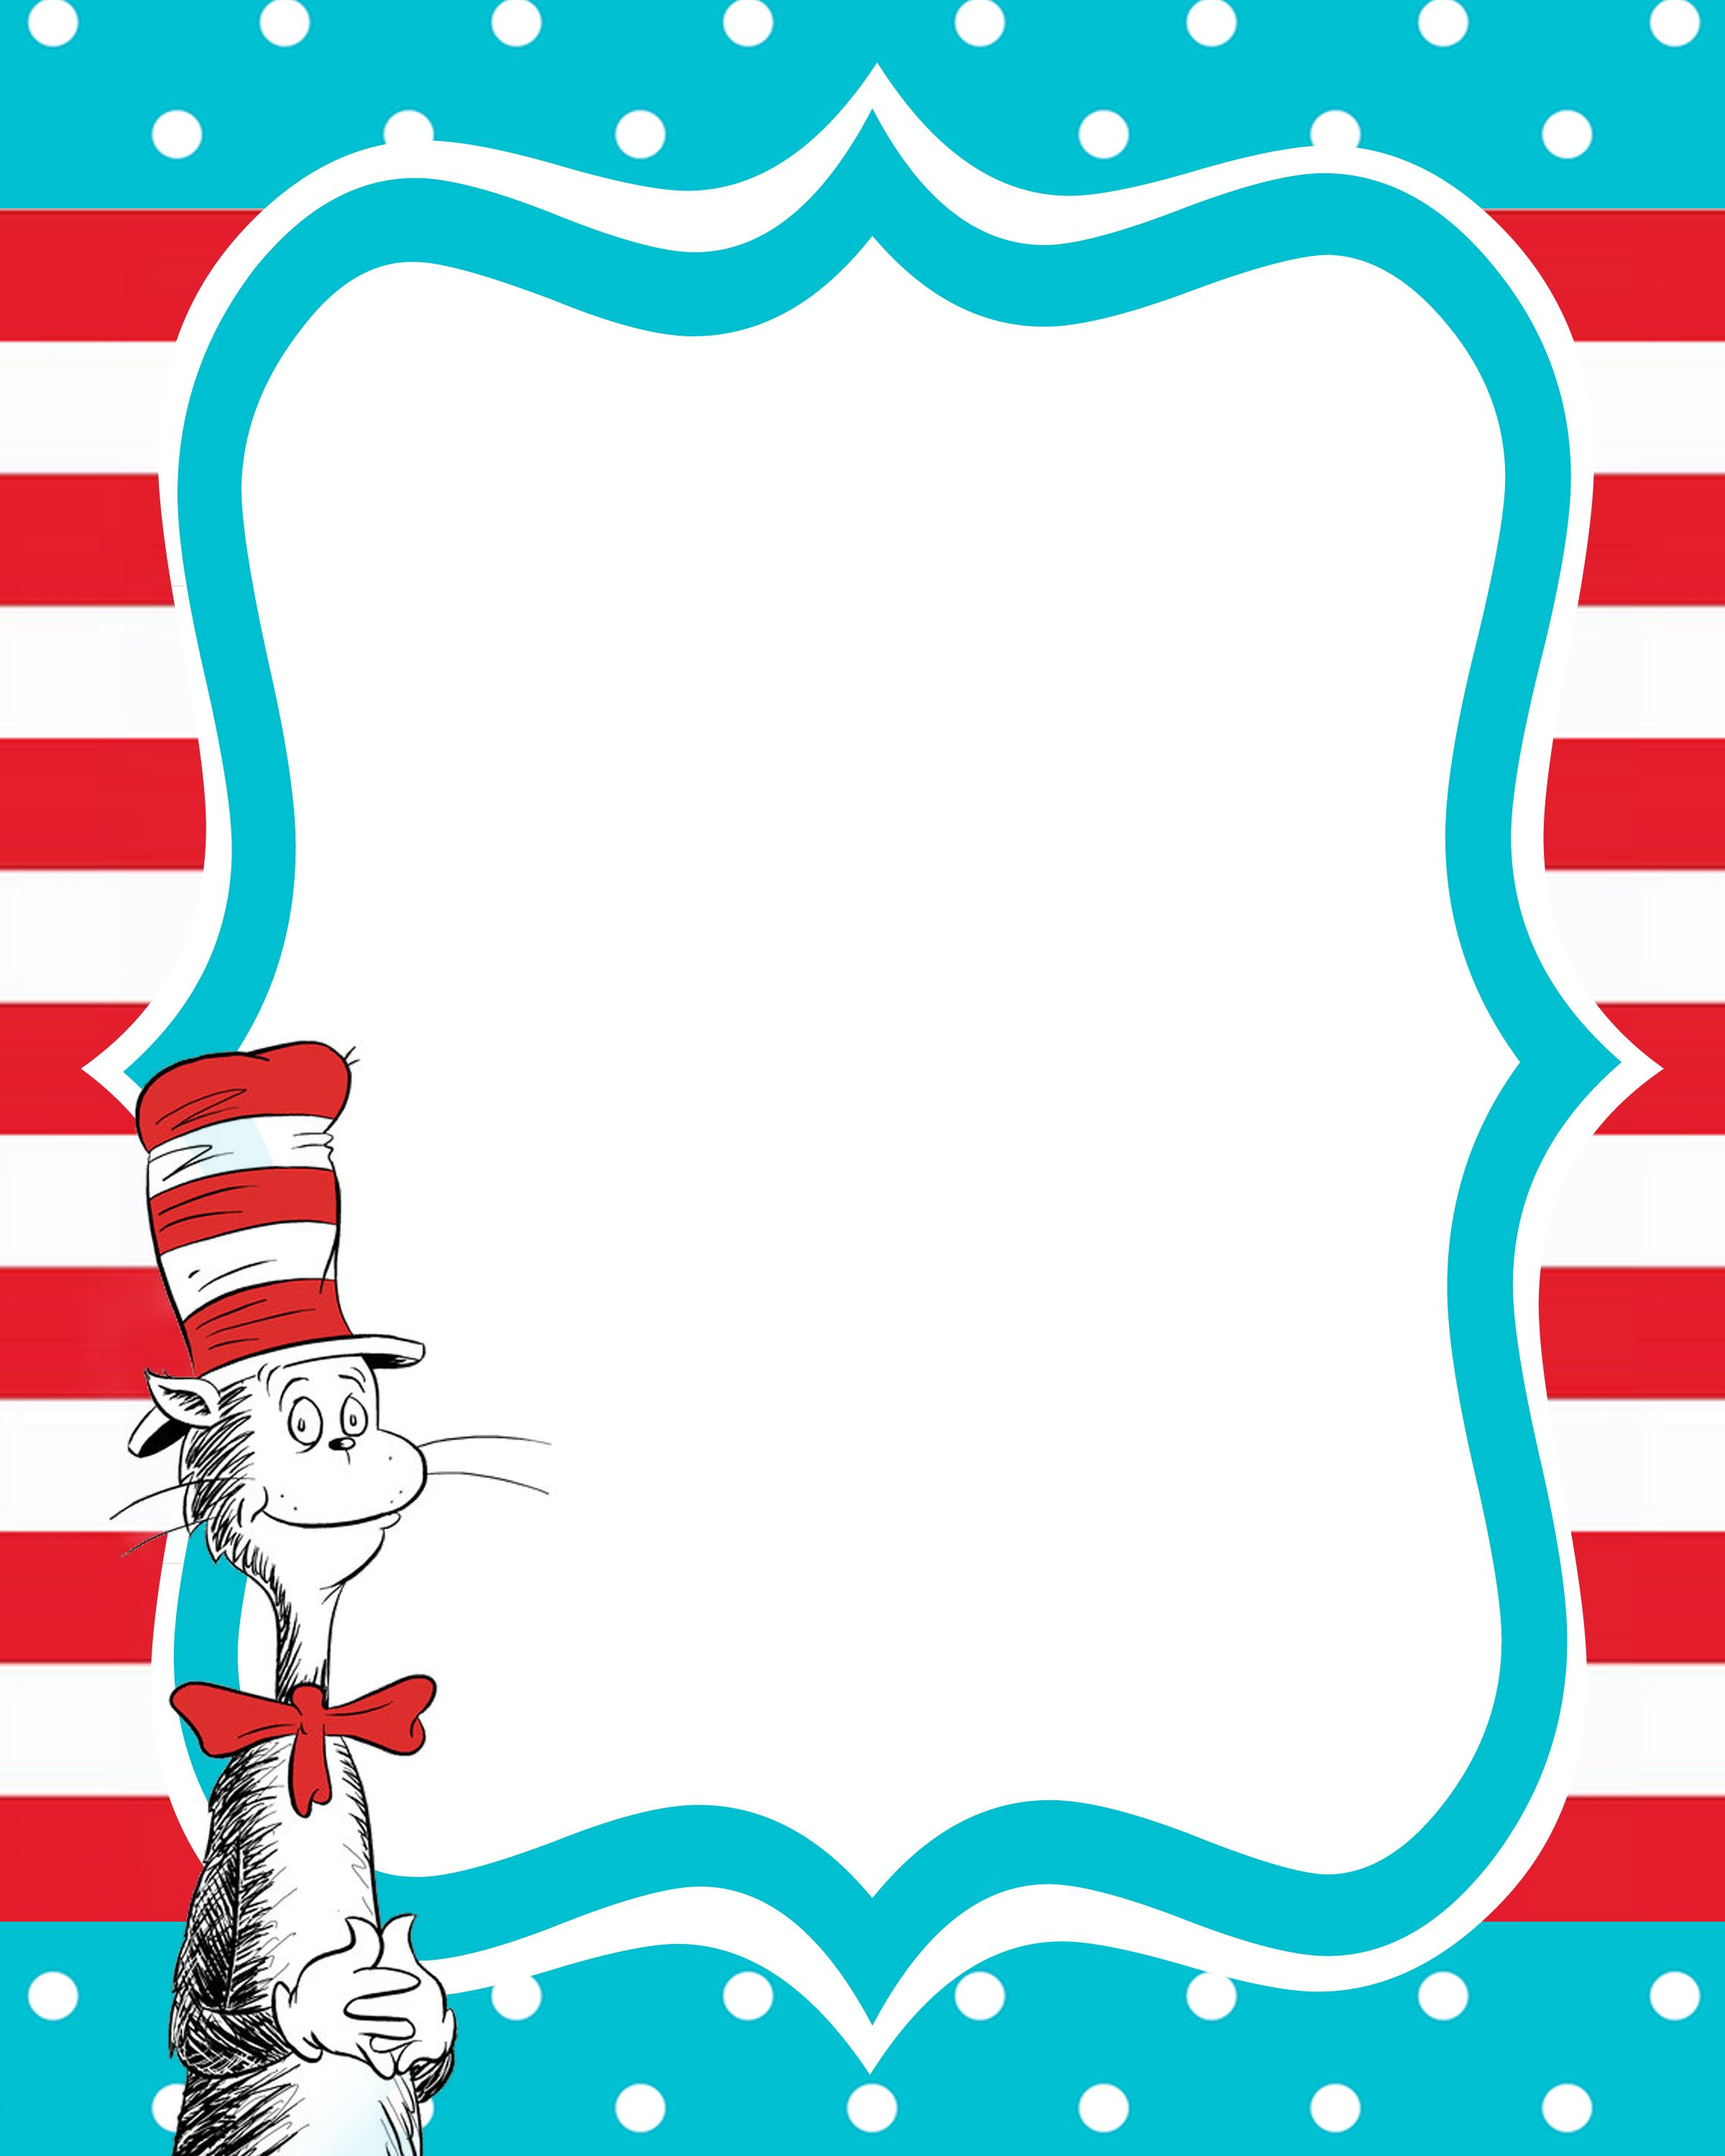 New Beginnings Dr Seuss Decorating Ideas Dr Seuss Day Dr Seuss Birthday Party Dr Seuss Birthday